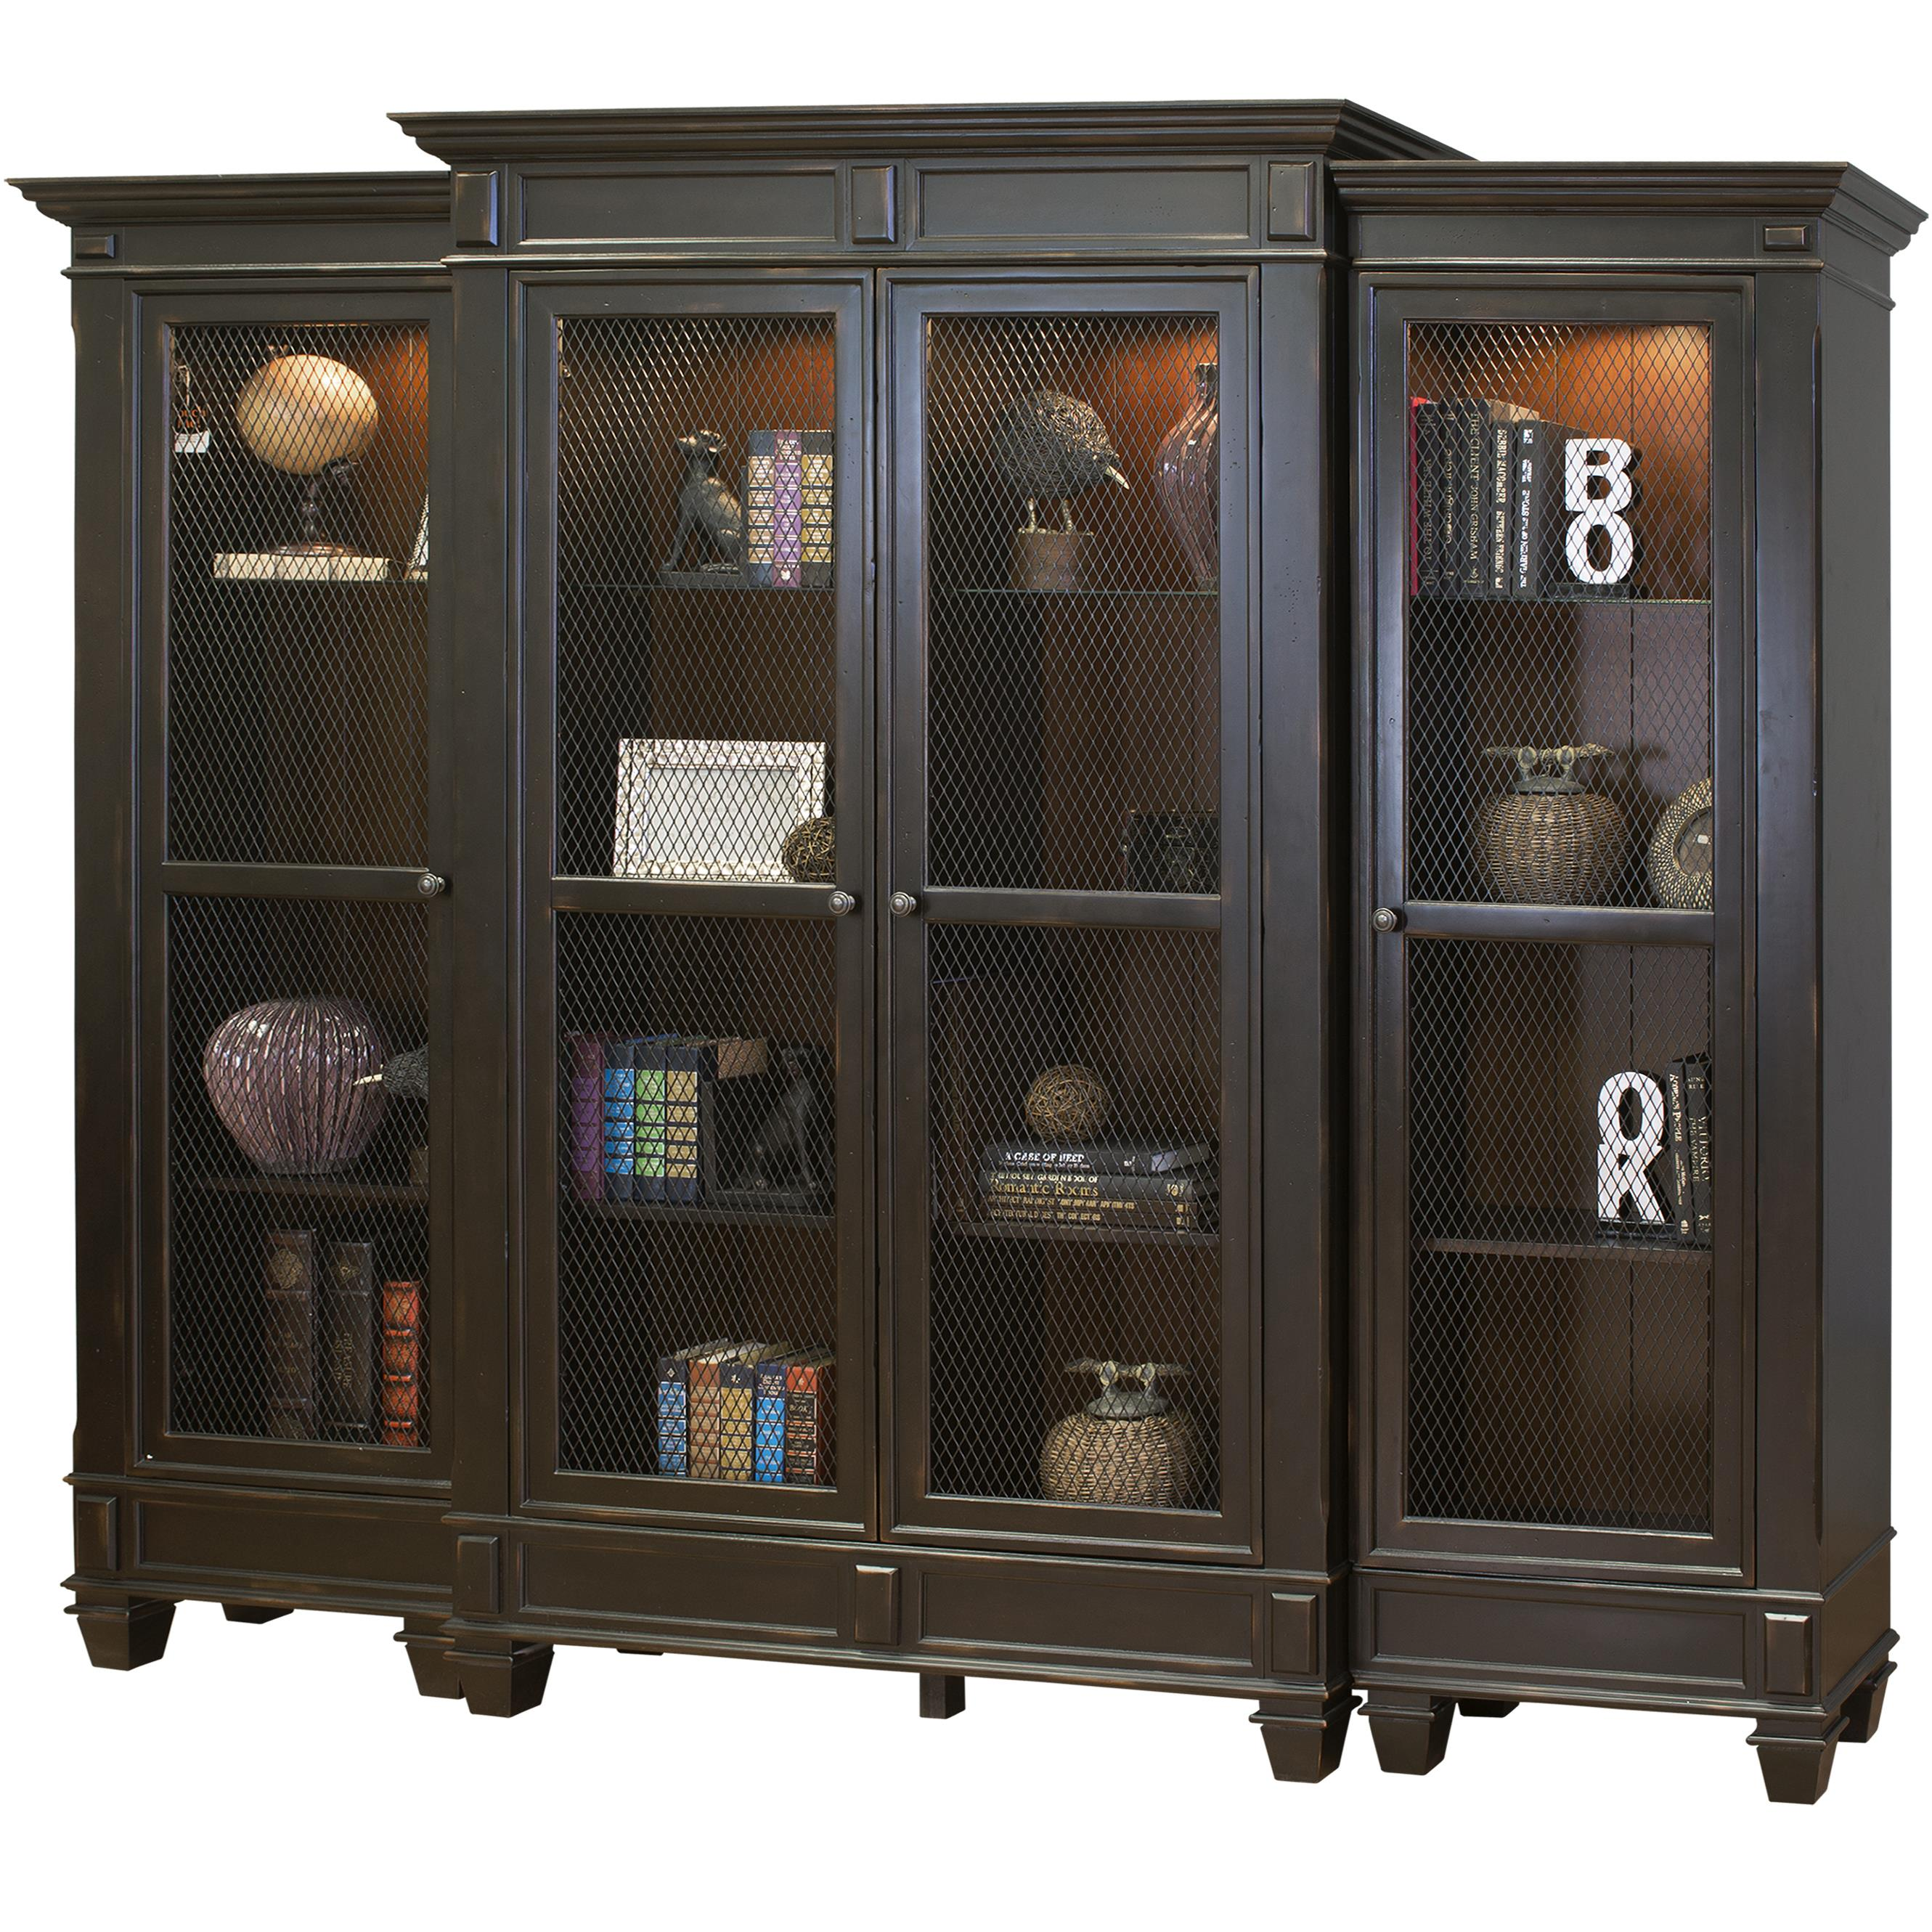 kathy ireland Home by Martin Hartford Bookcase - Item Number: IMHF4878+2476L+2476R